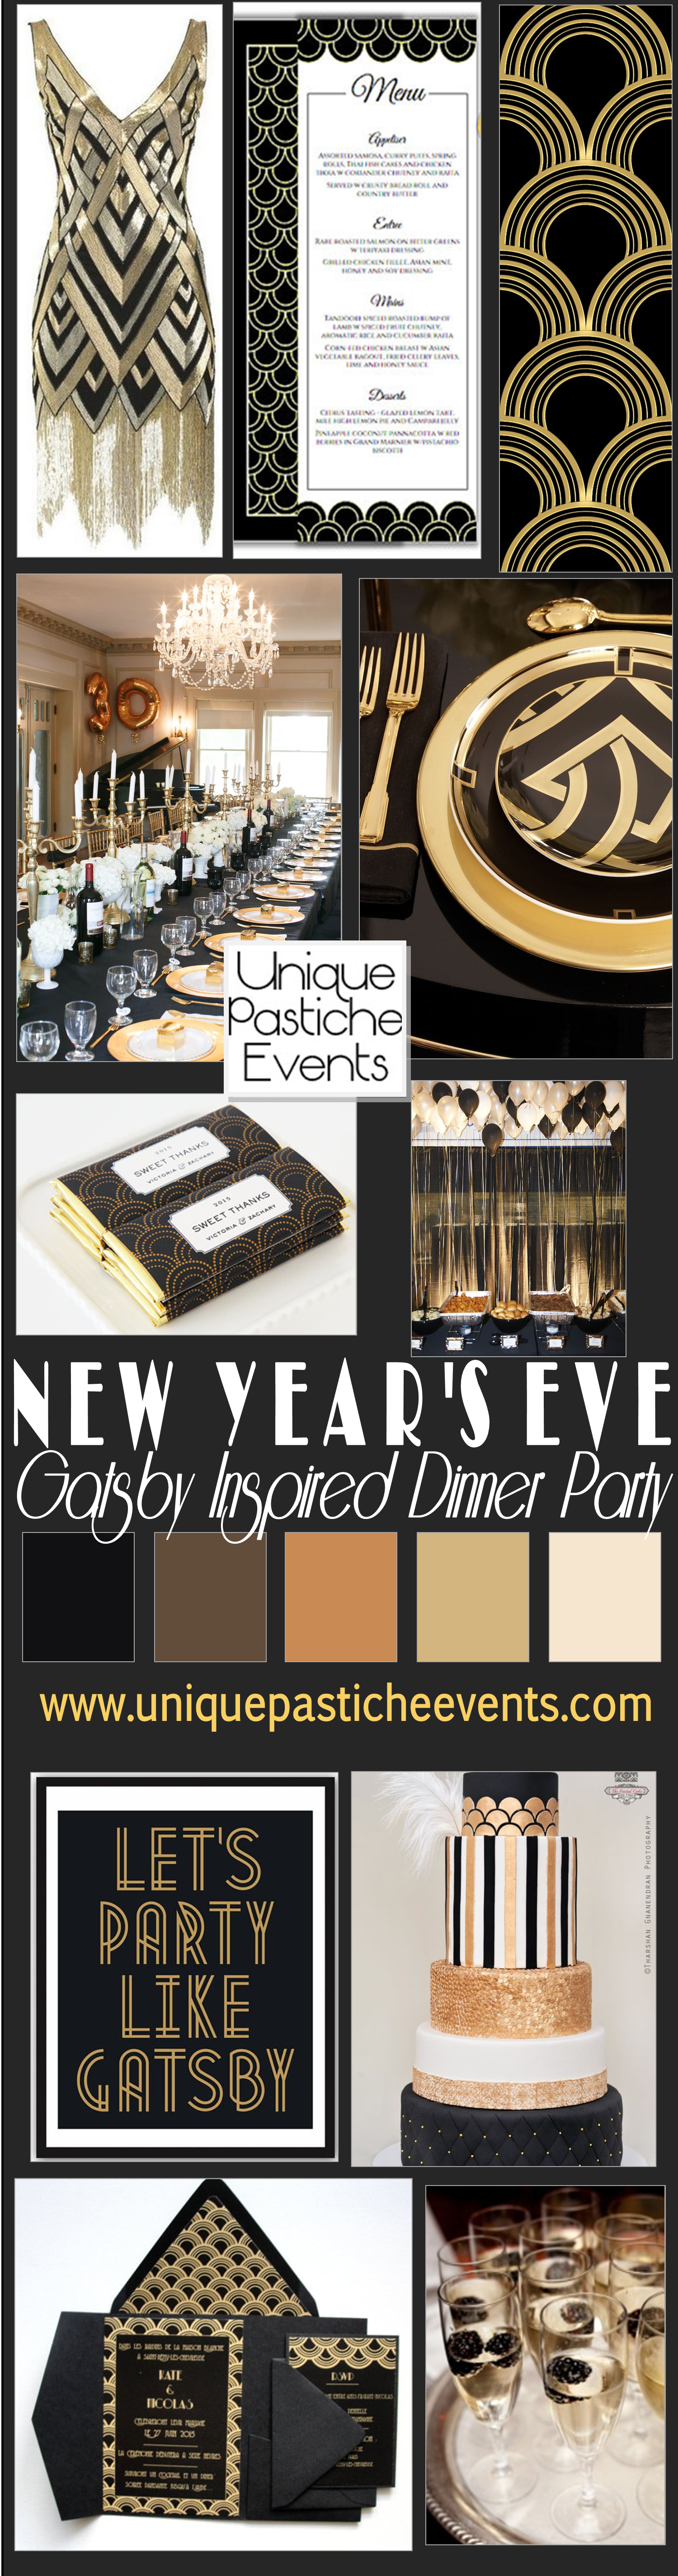 Gatsby Inspired New Year's Eve Dinner Party Ideas | Unique ...